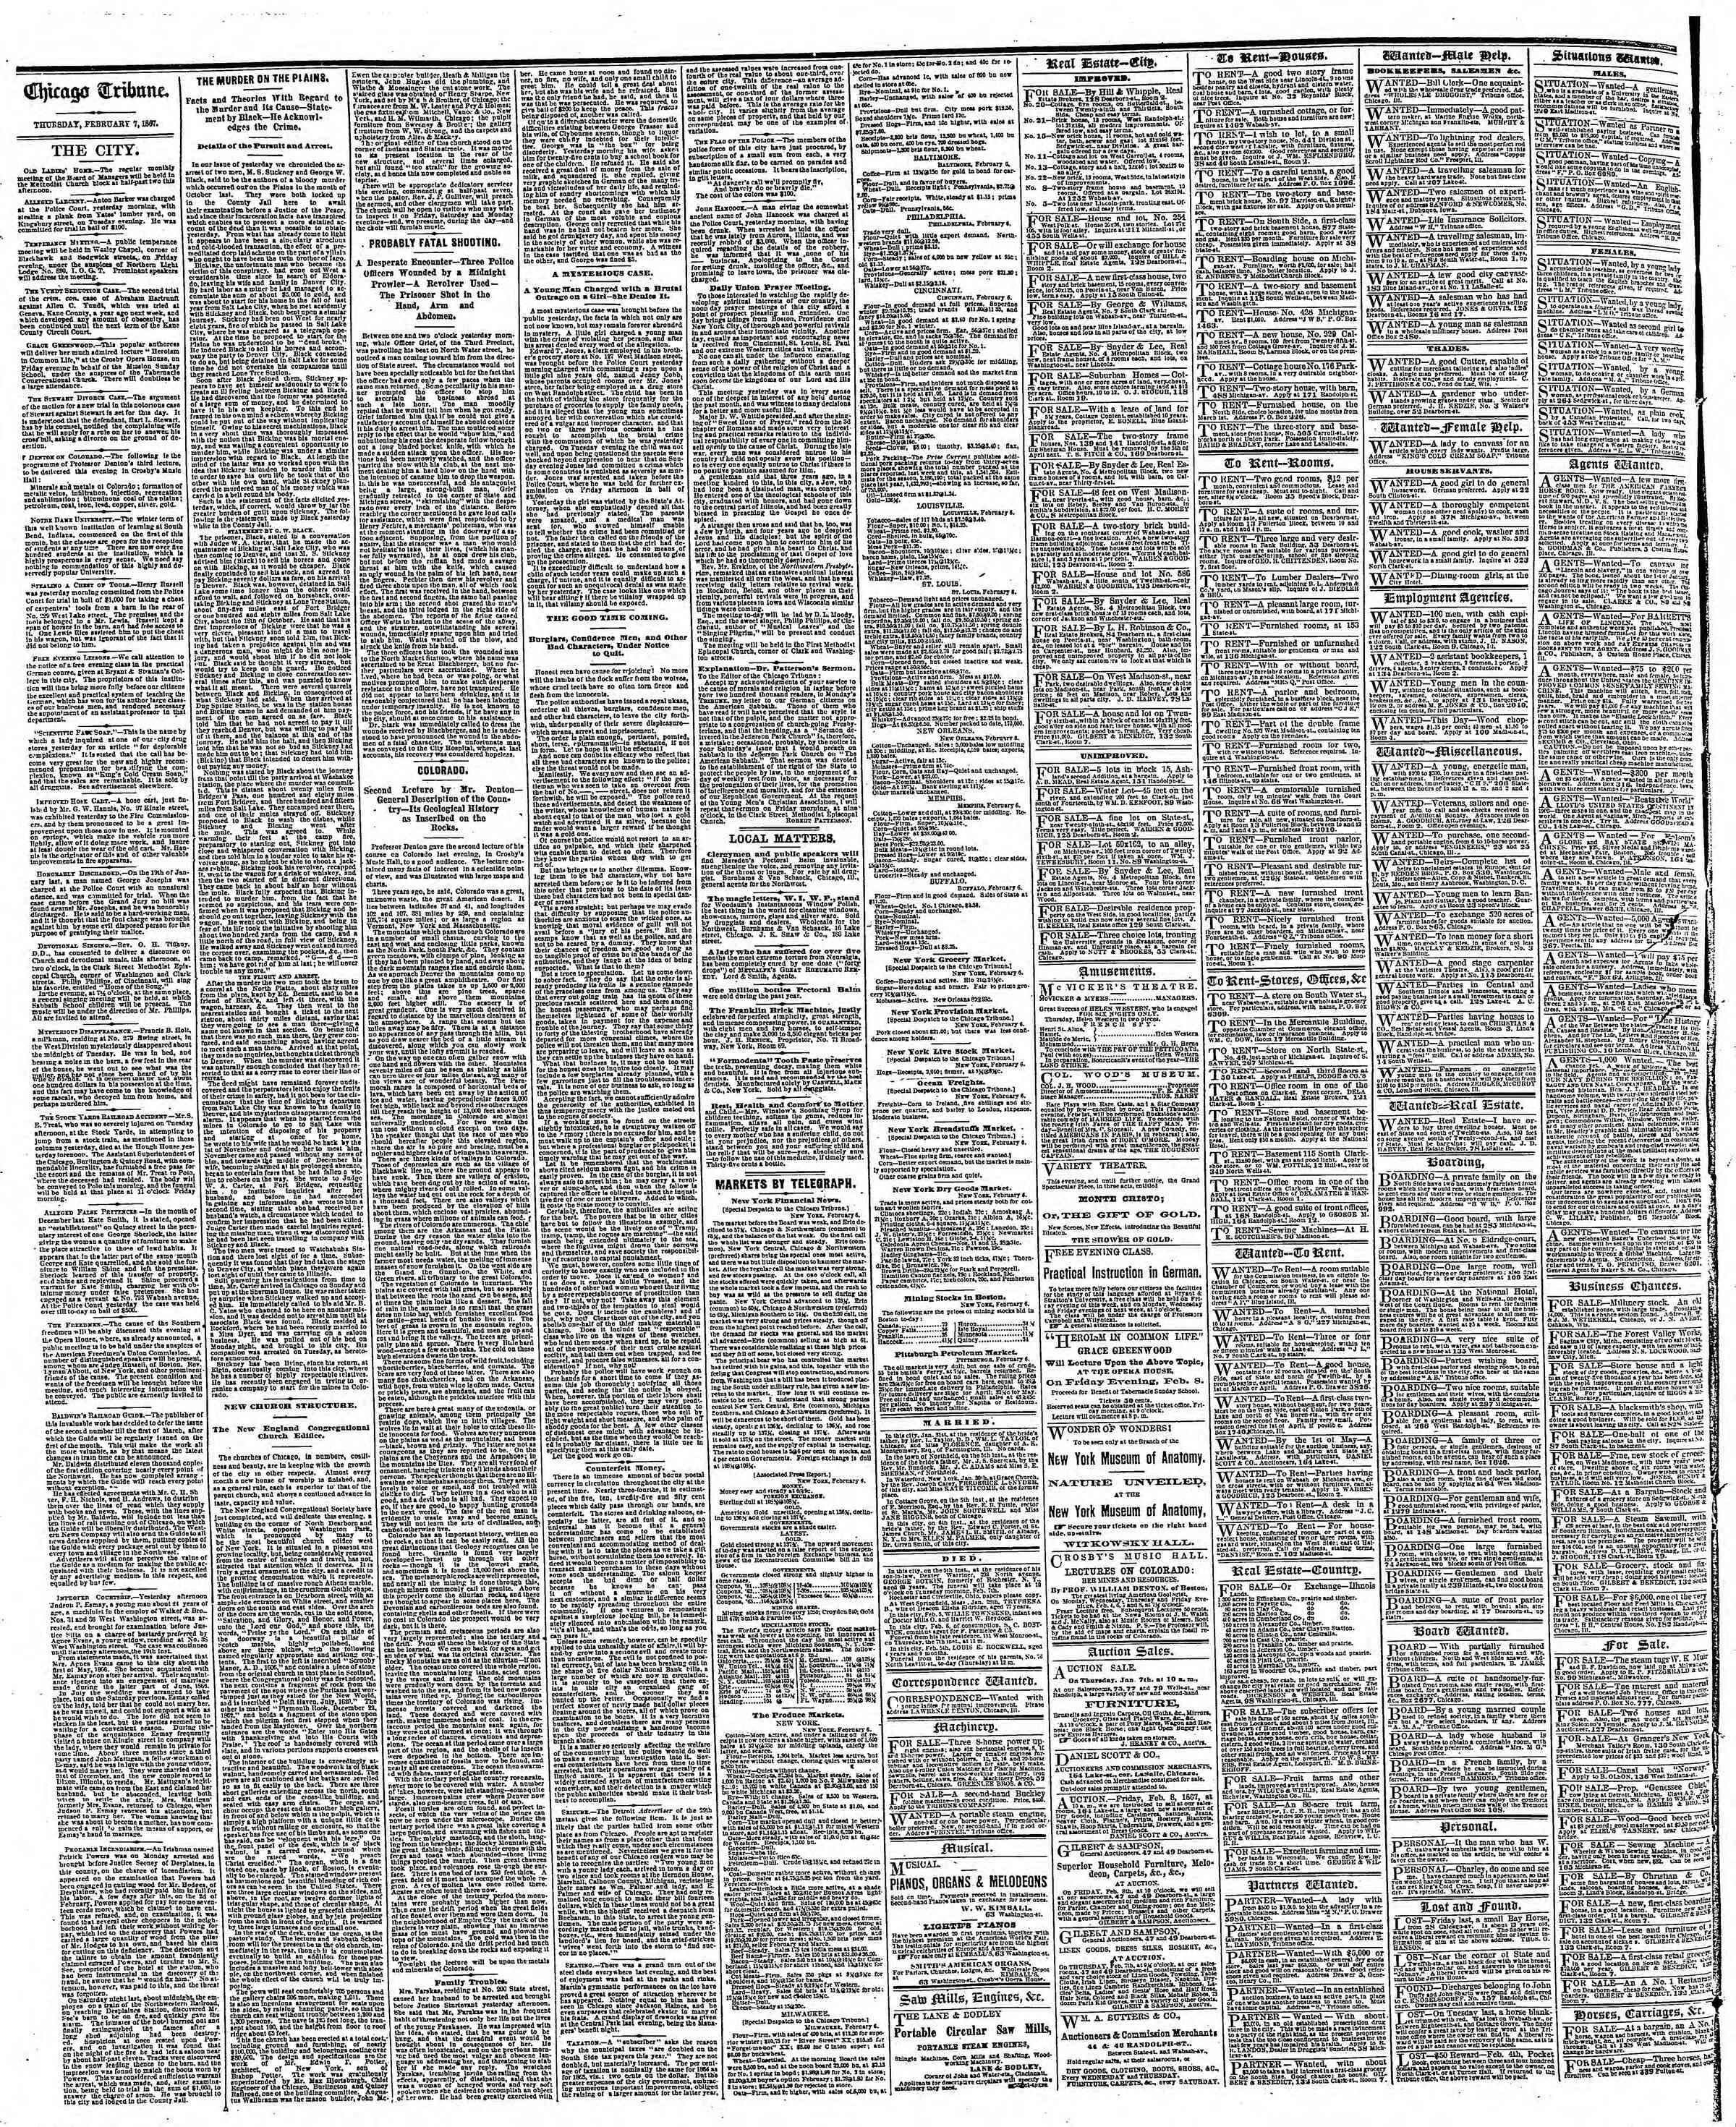 Newspaper of The Chicago Tribune dated February 7, 1867 Page 4